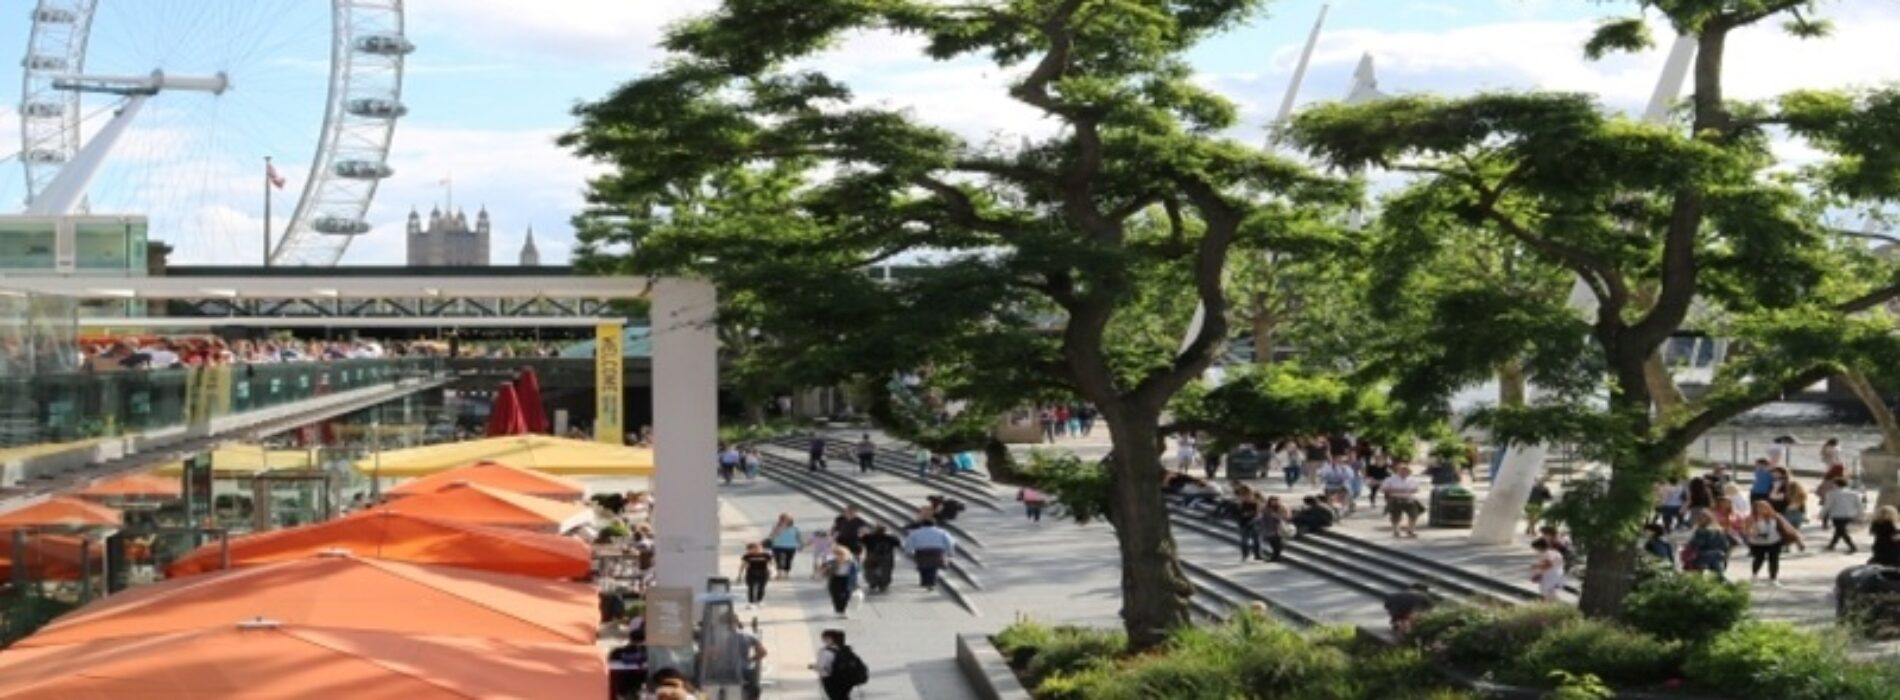 Samantha Renke: why I love London's South Bank for accessibility